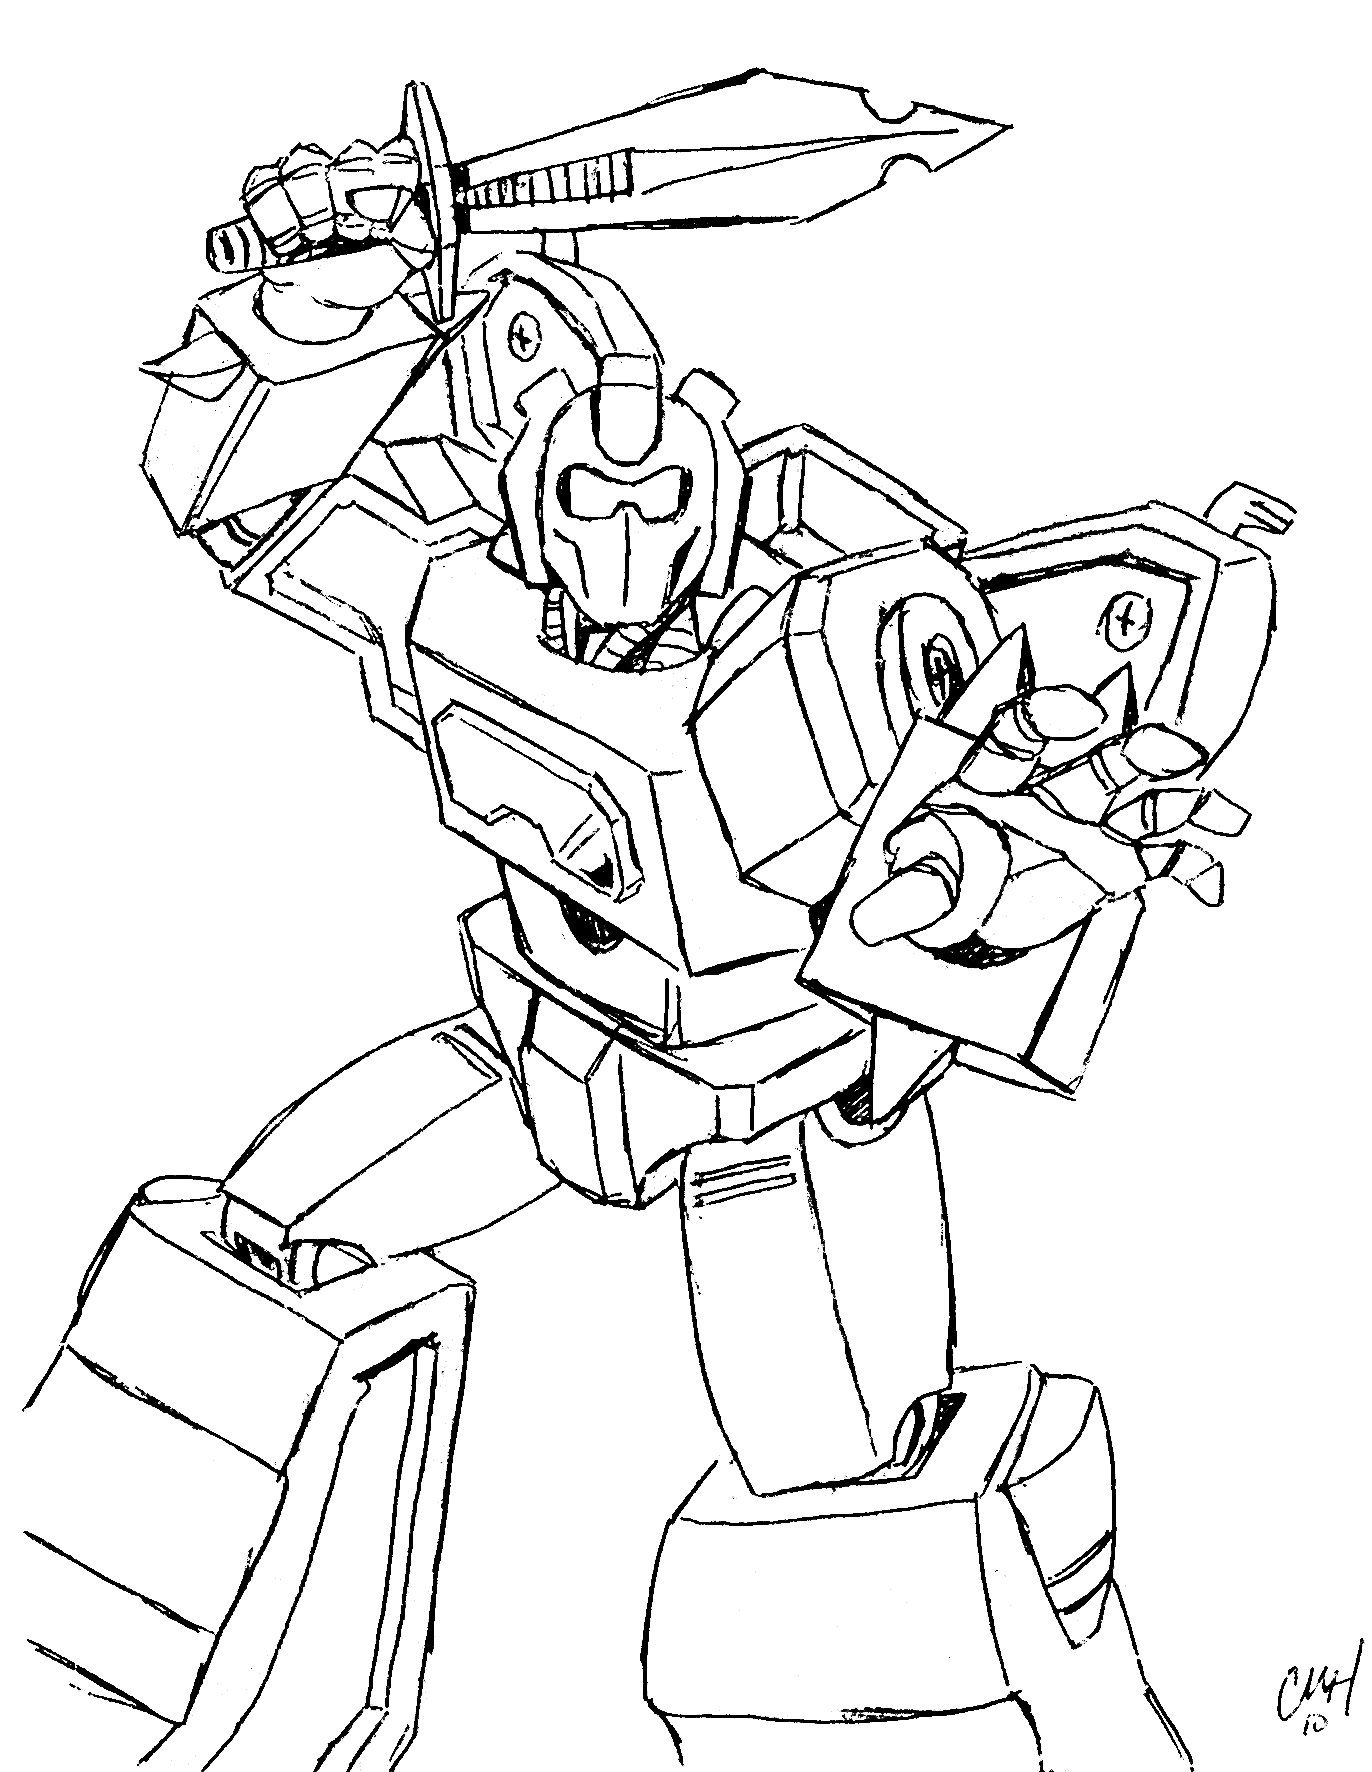 Free Printable Transformers Coloring Pages For Kids Transformers Coloring Pages Toddler Coloring Book Bee Coloring Pages